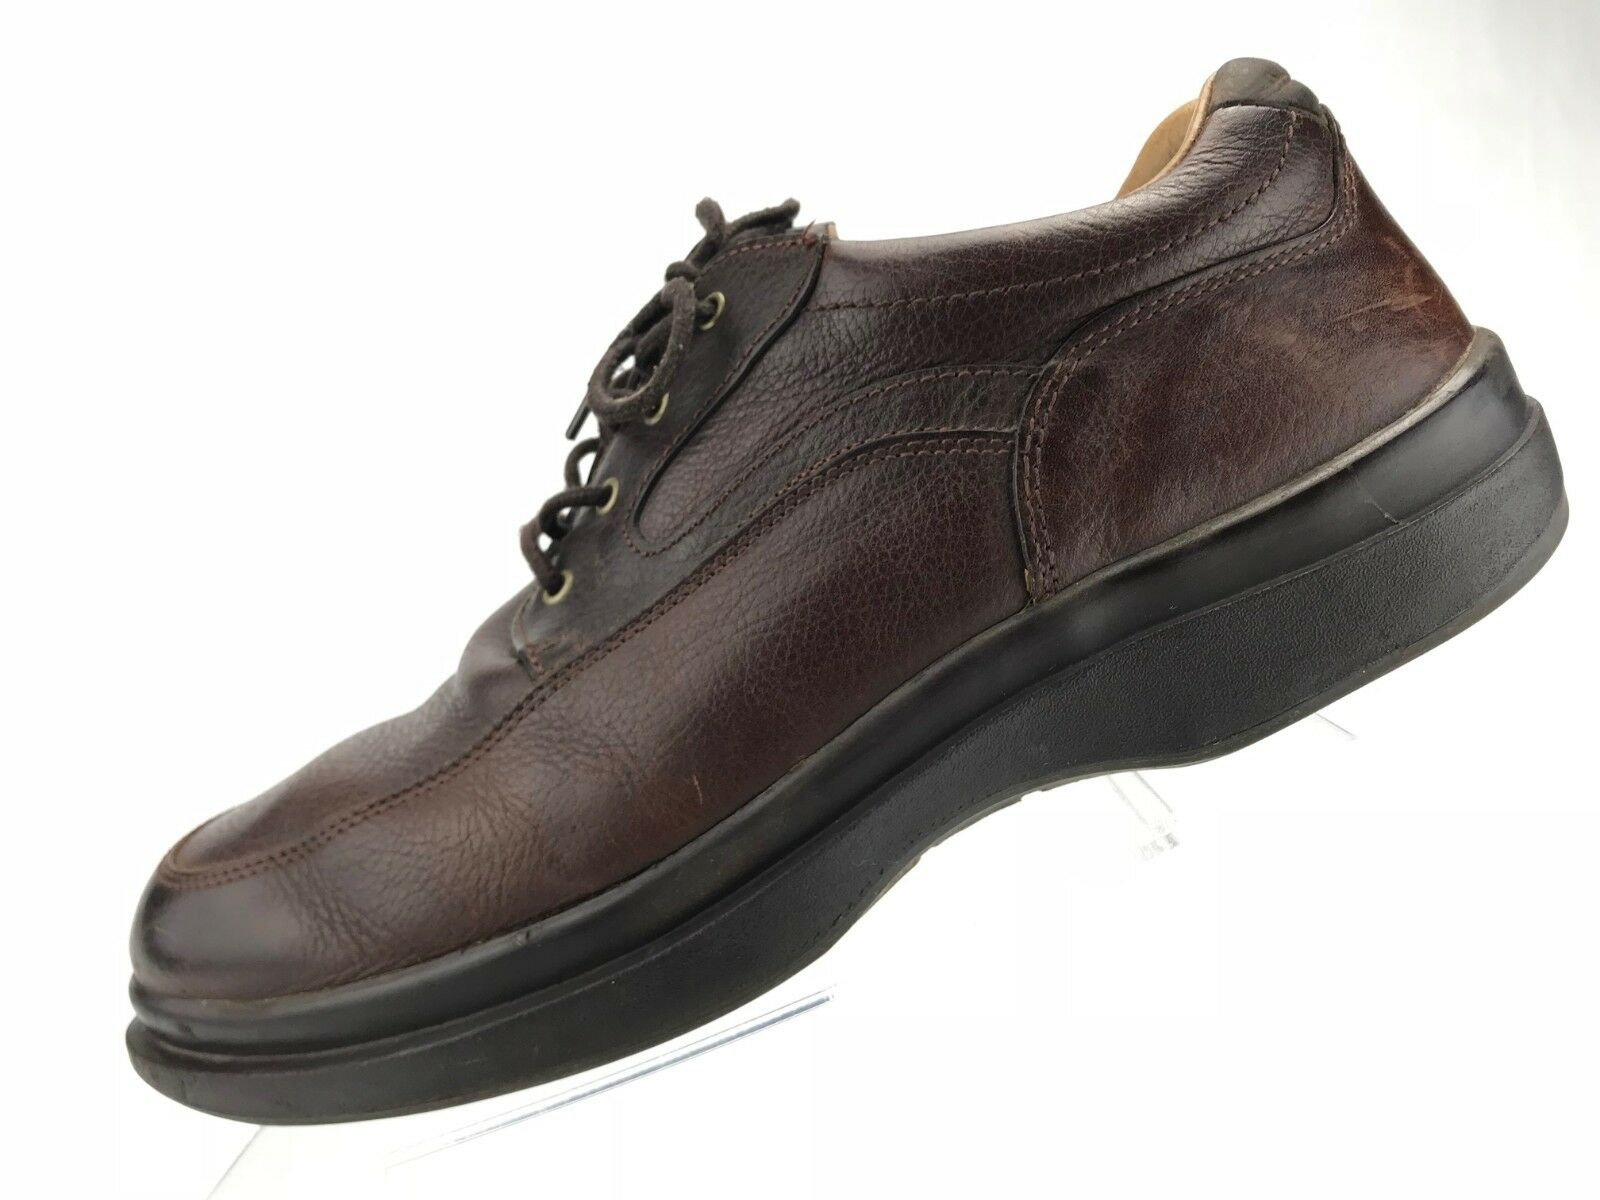 Red Wing Oxford Apron Toe - Brown Casual Working Slip Resistant Men's Size 13 D